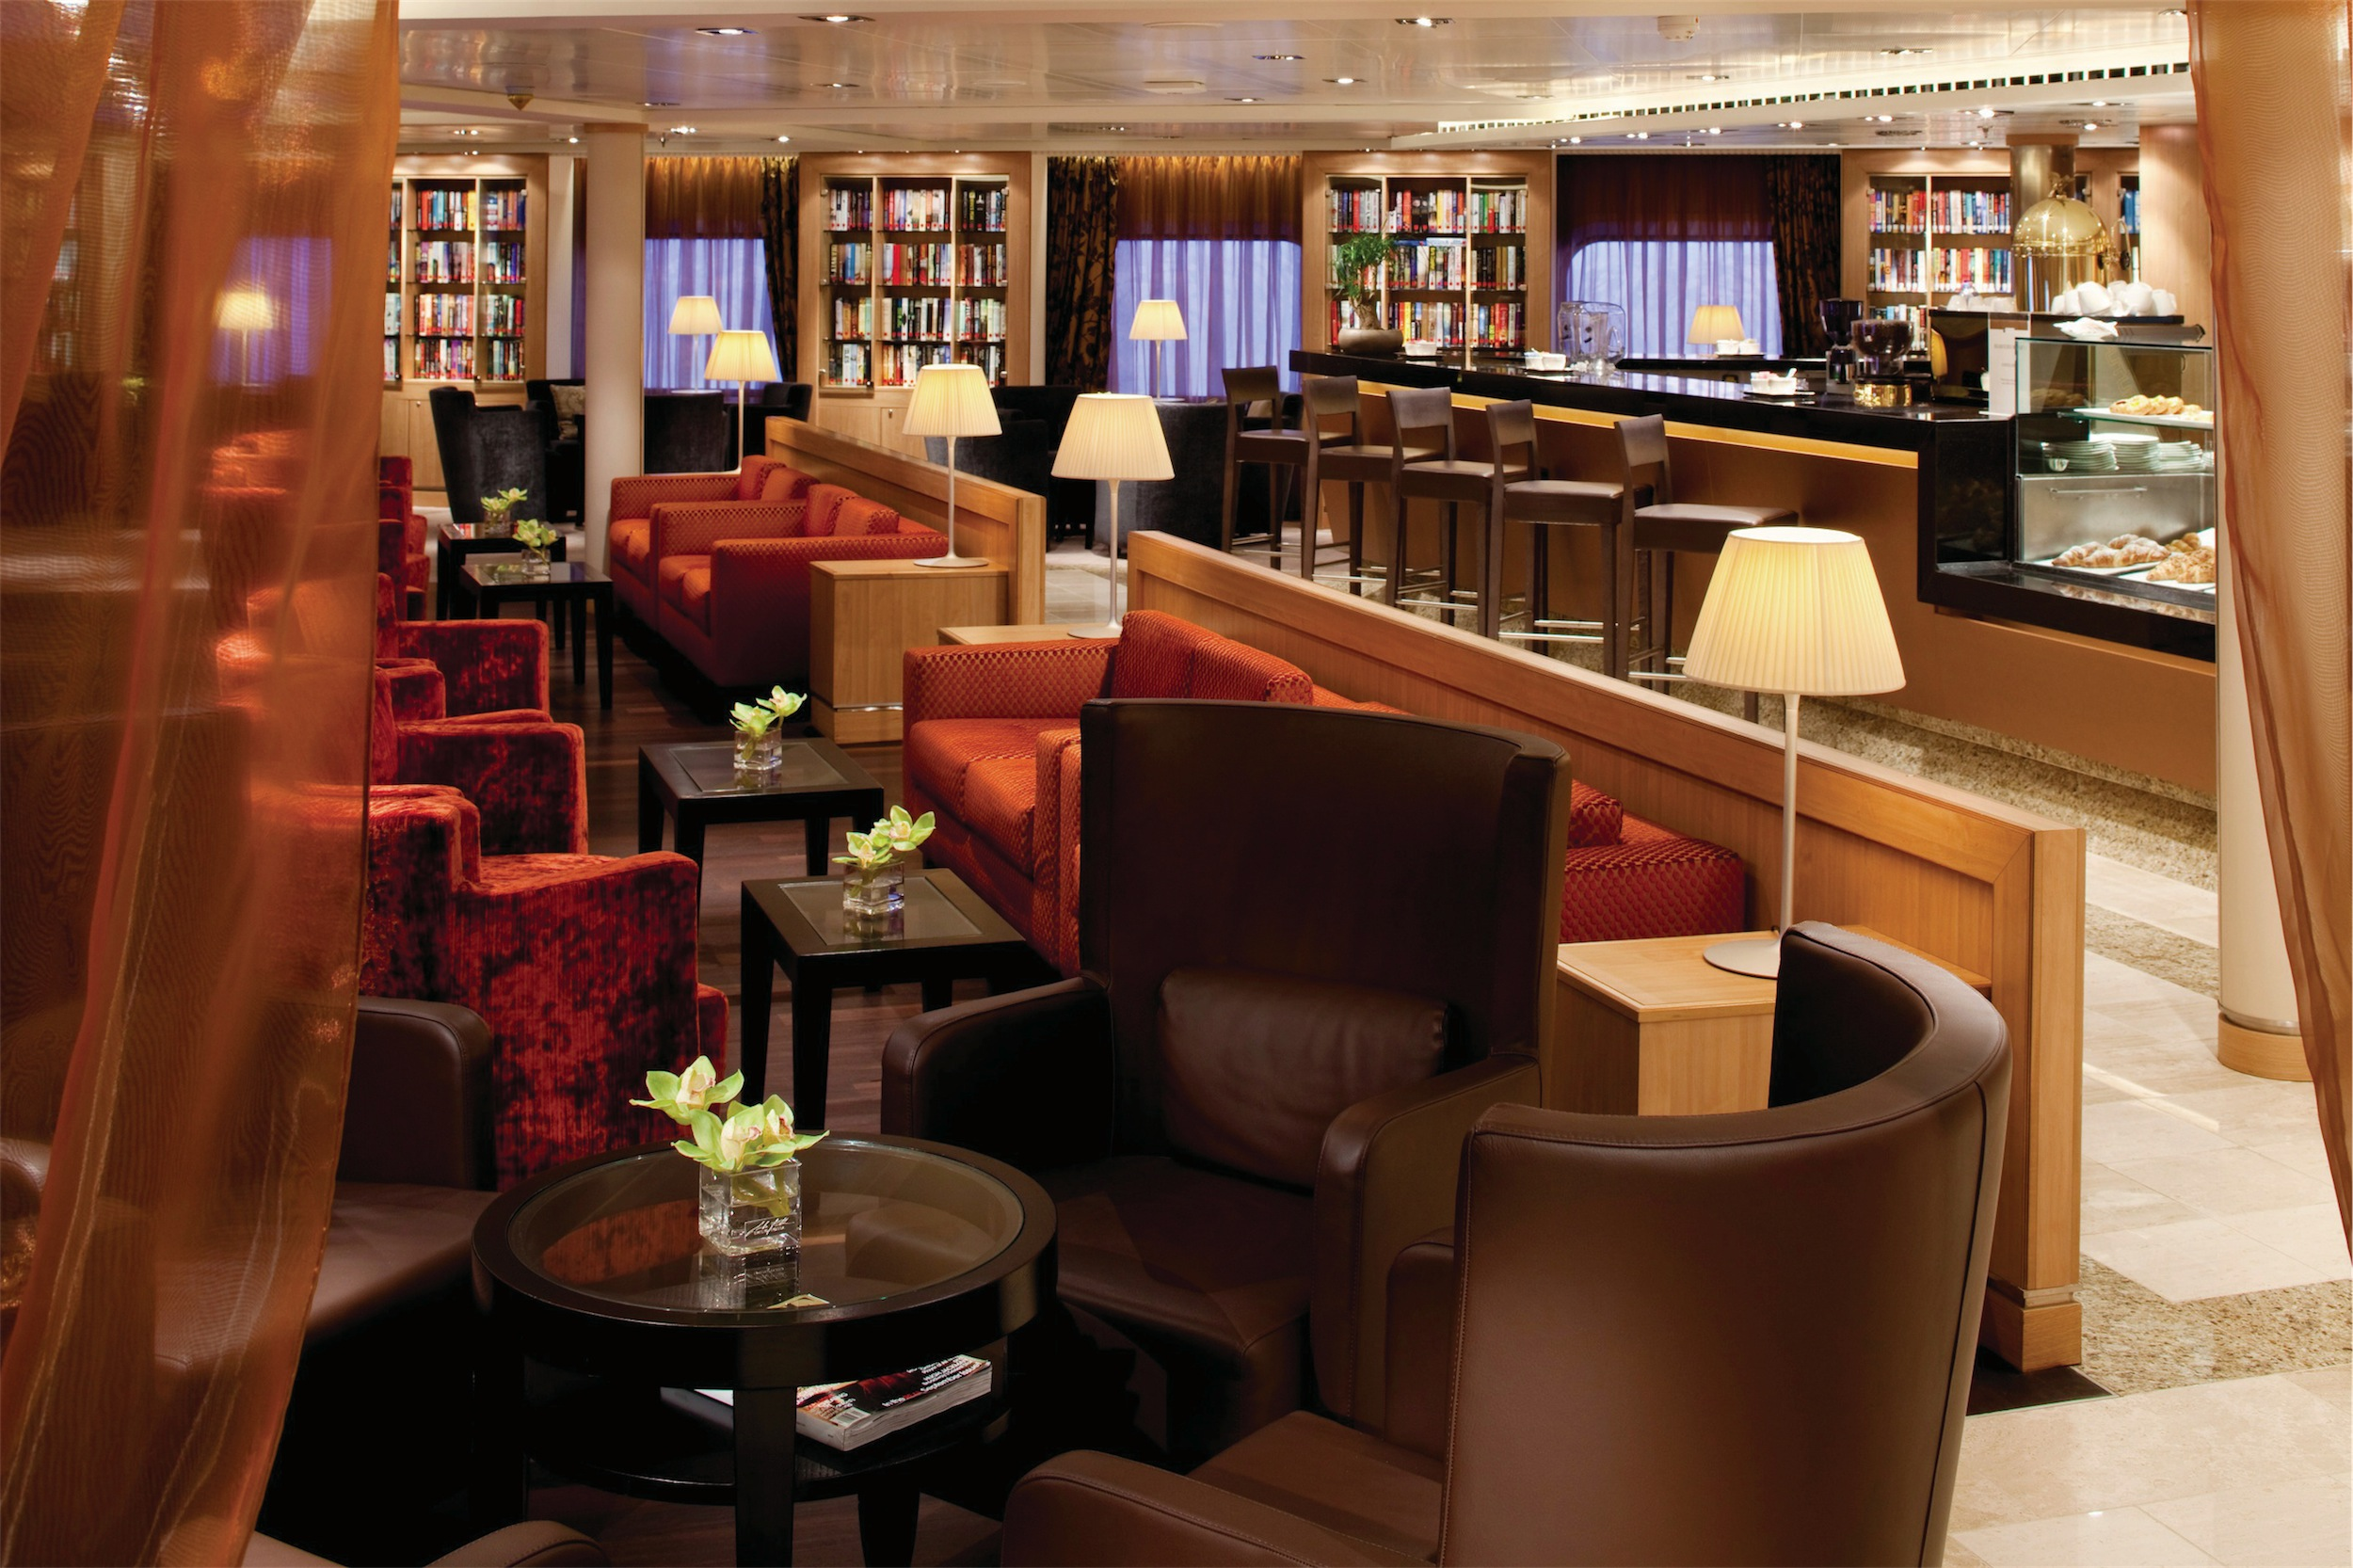 Seabourn Odyssey Class Interior Seabourn Square 2.jpg